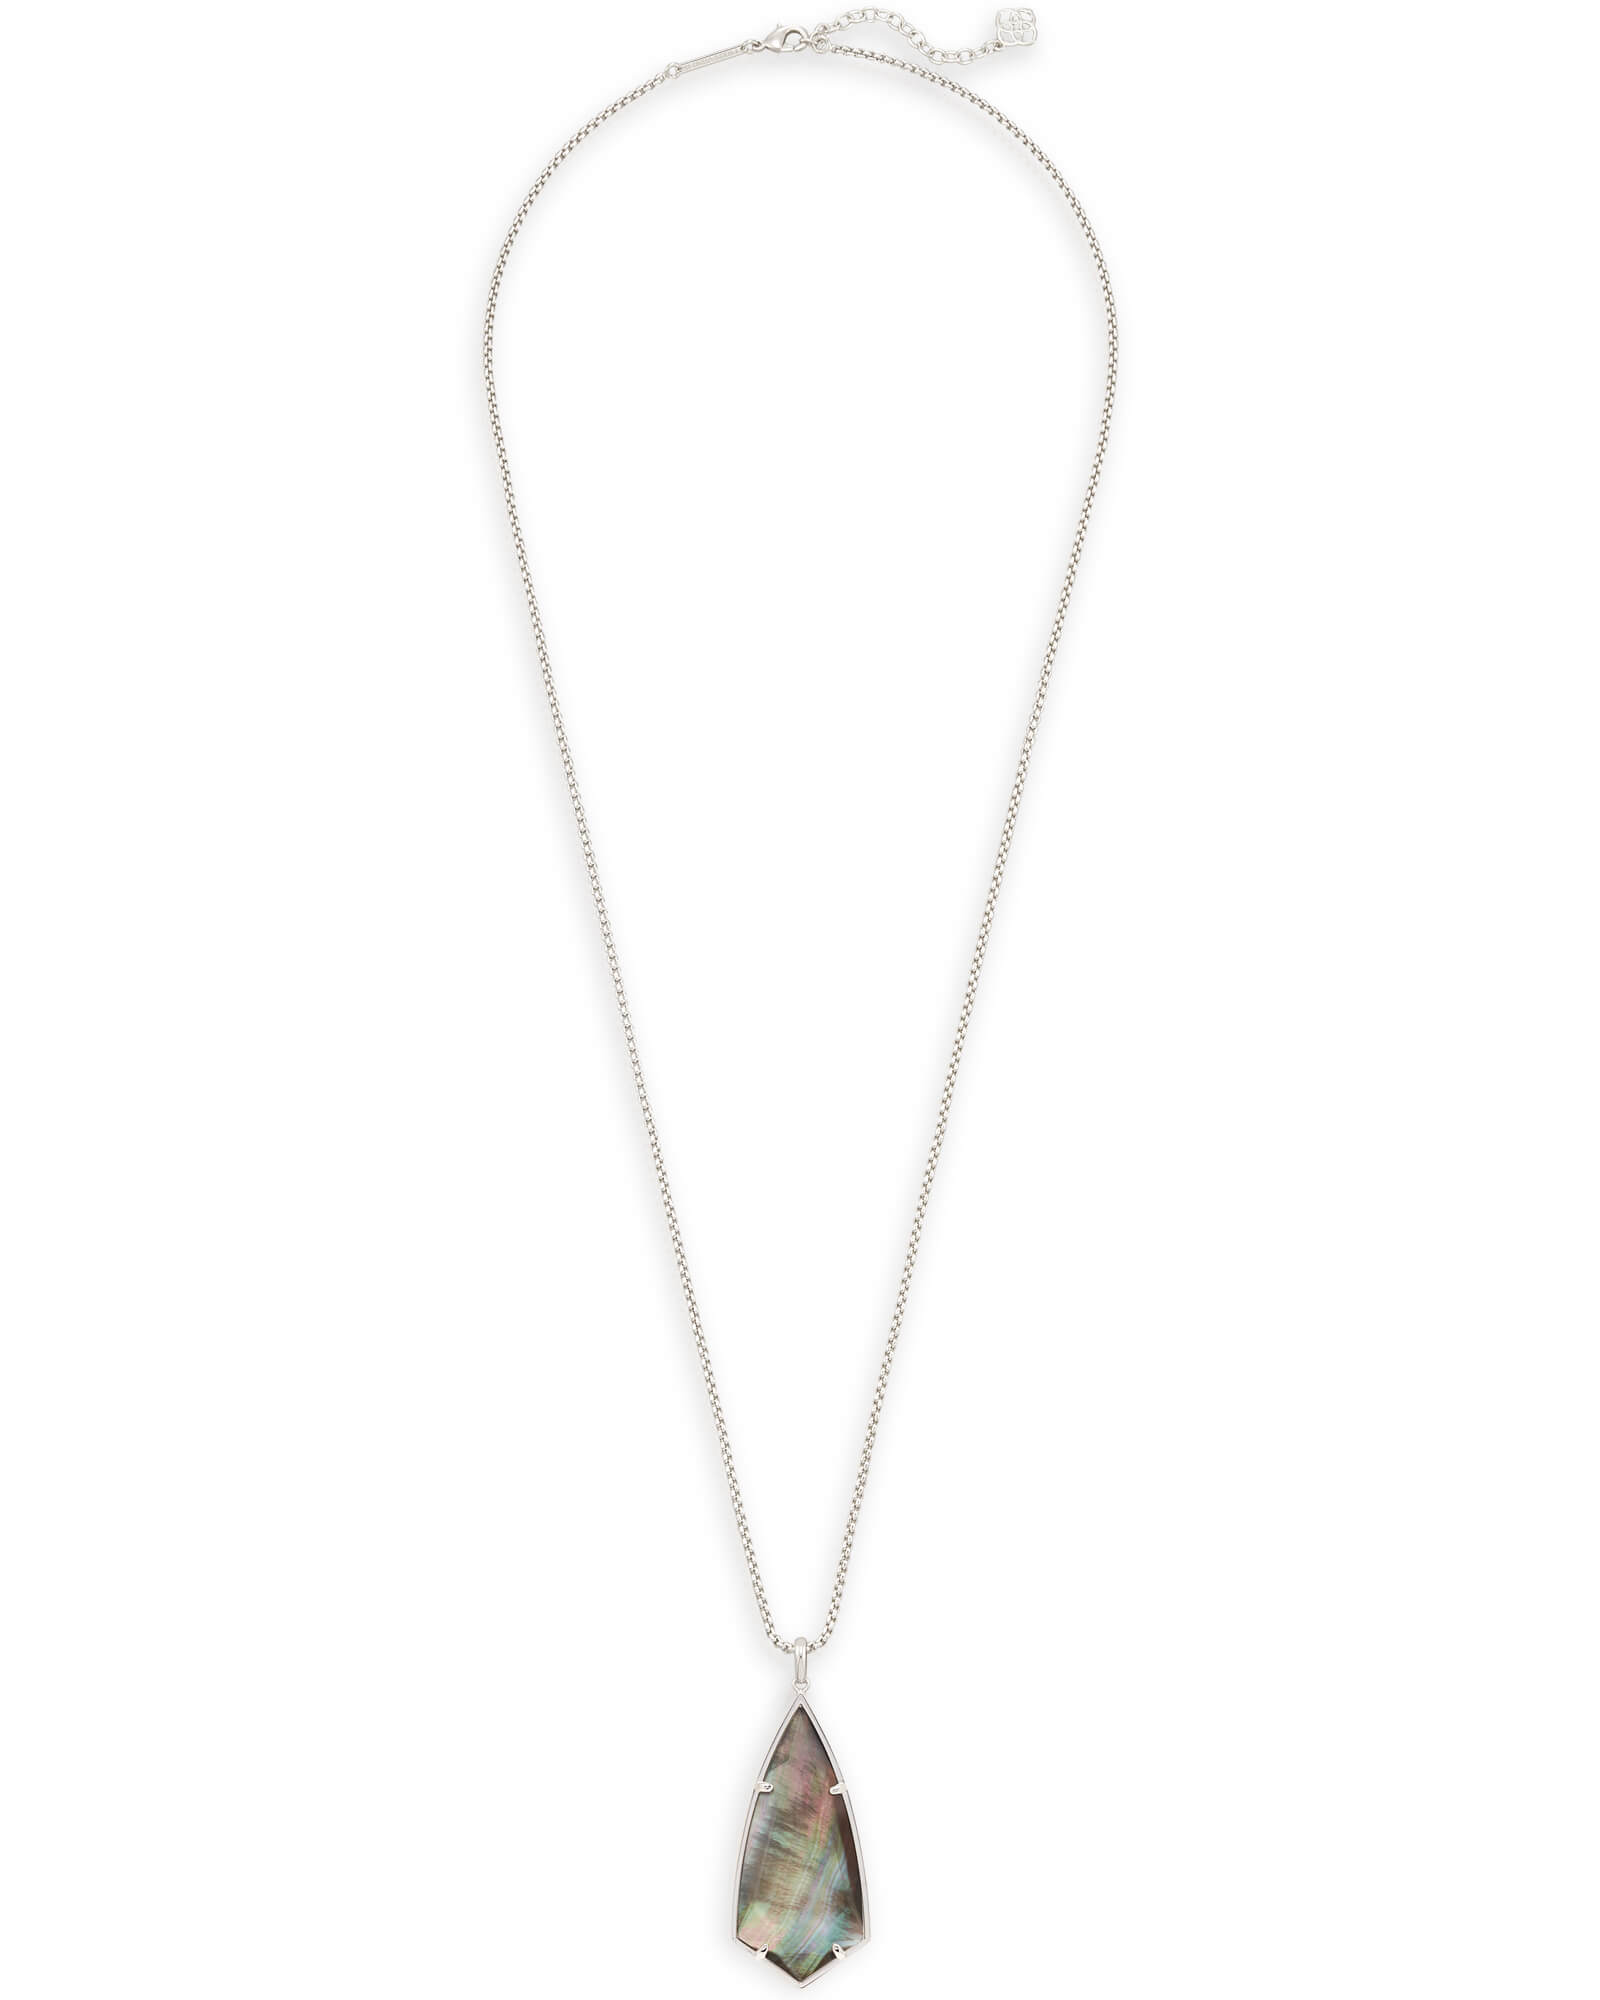 Carole Long Pendant Necklace in Black Pearl